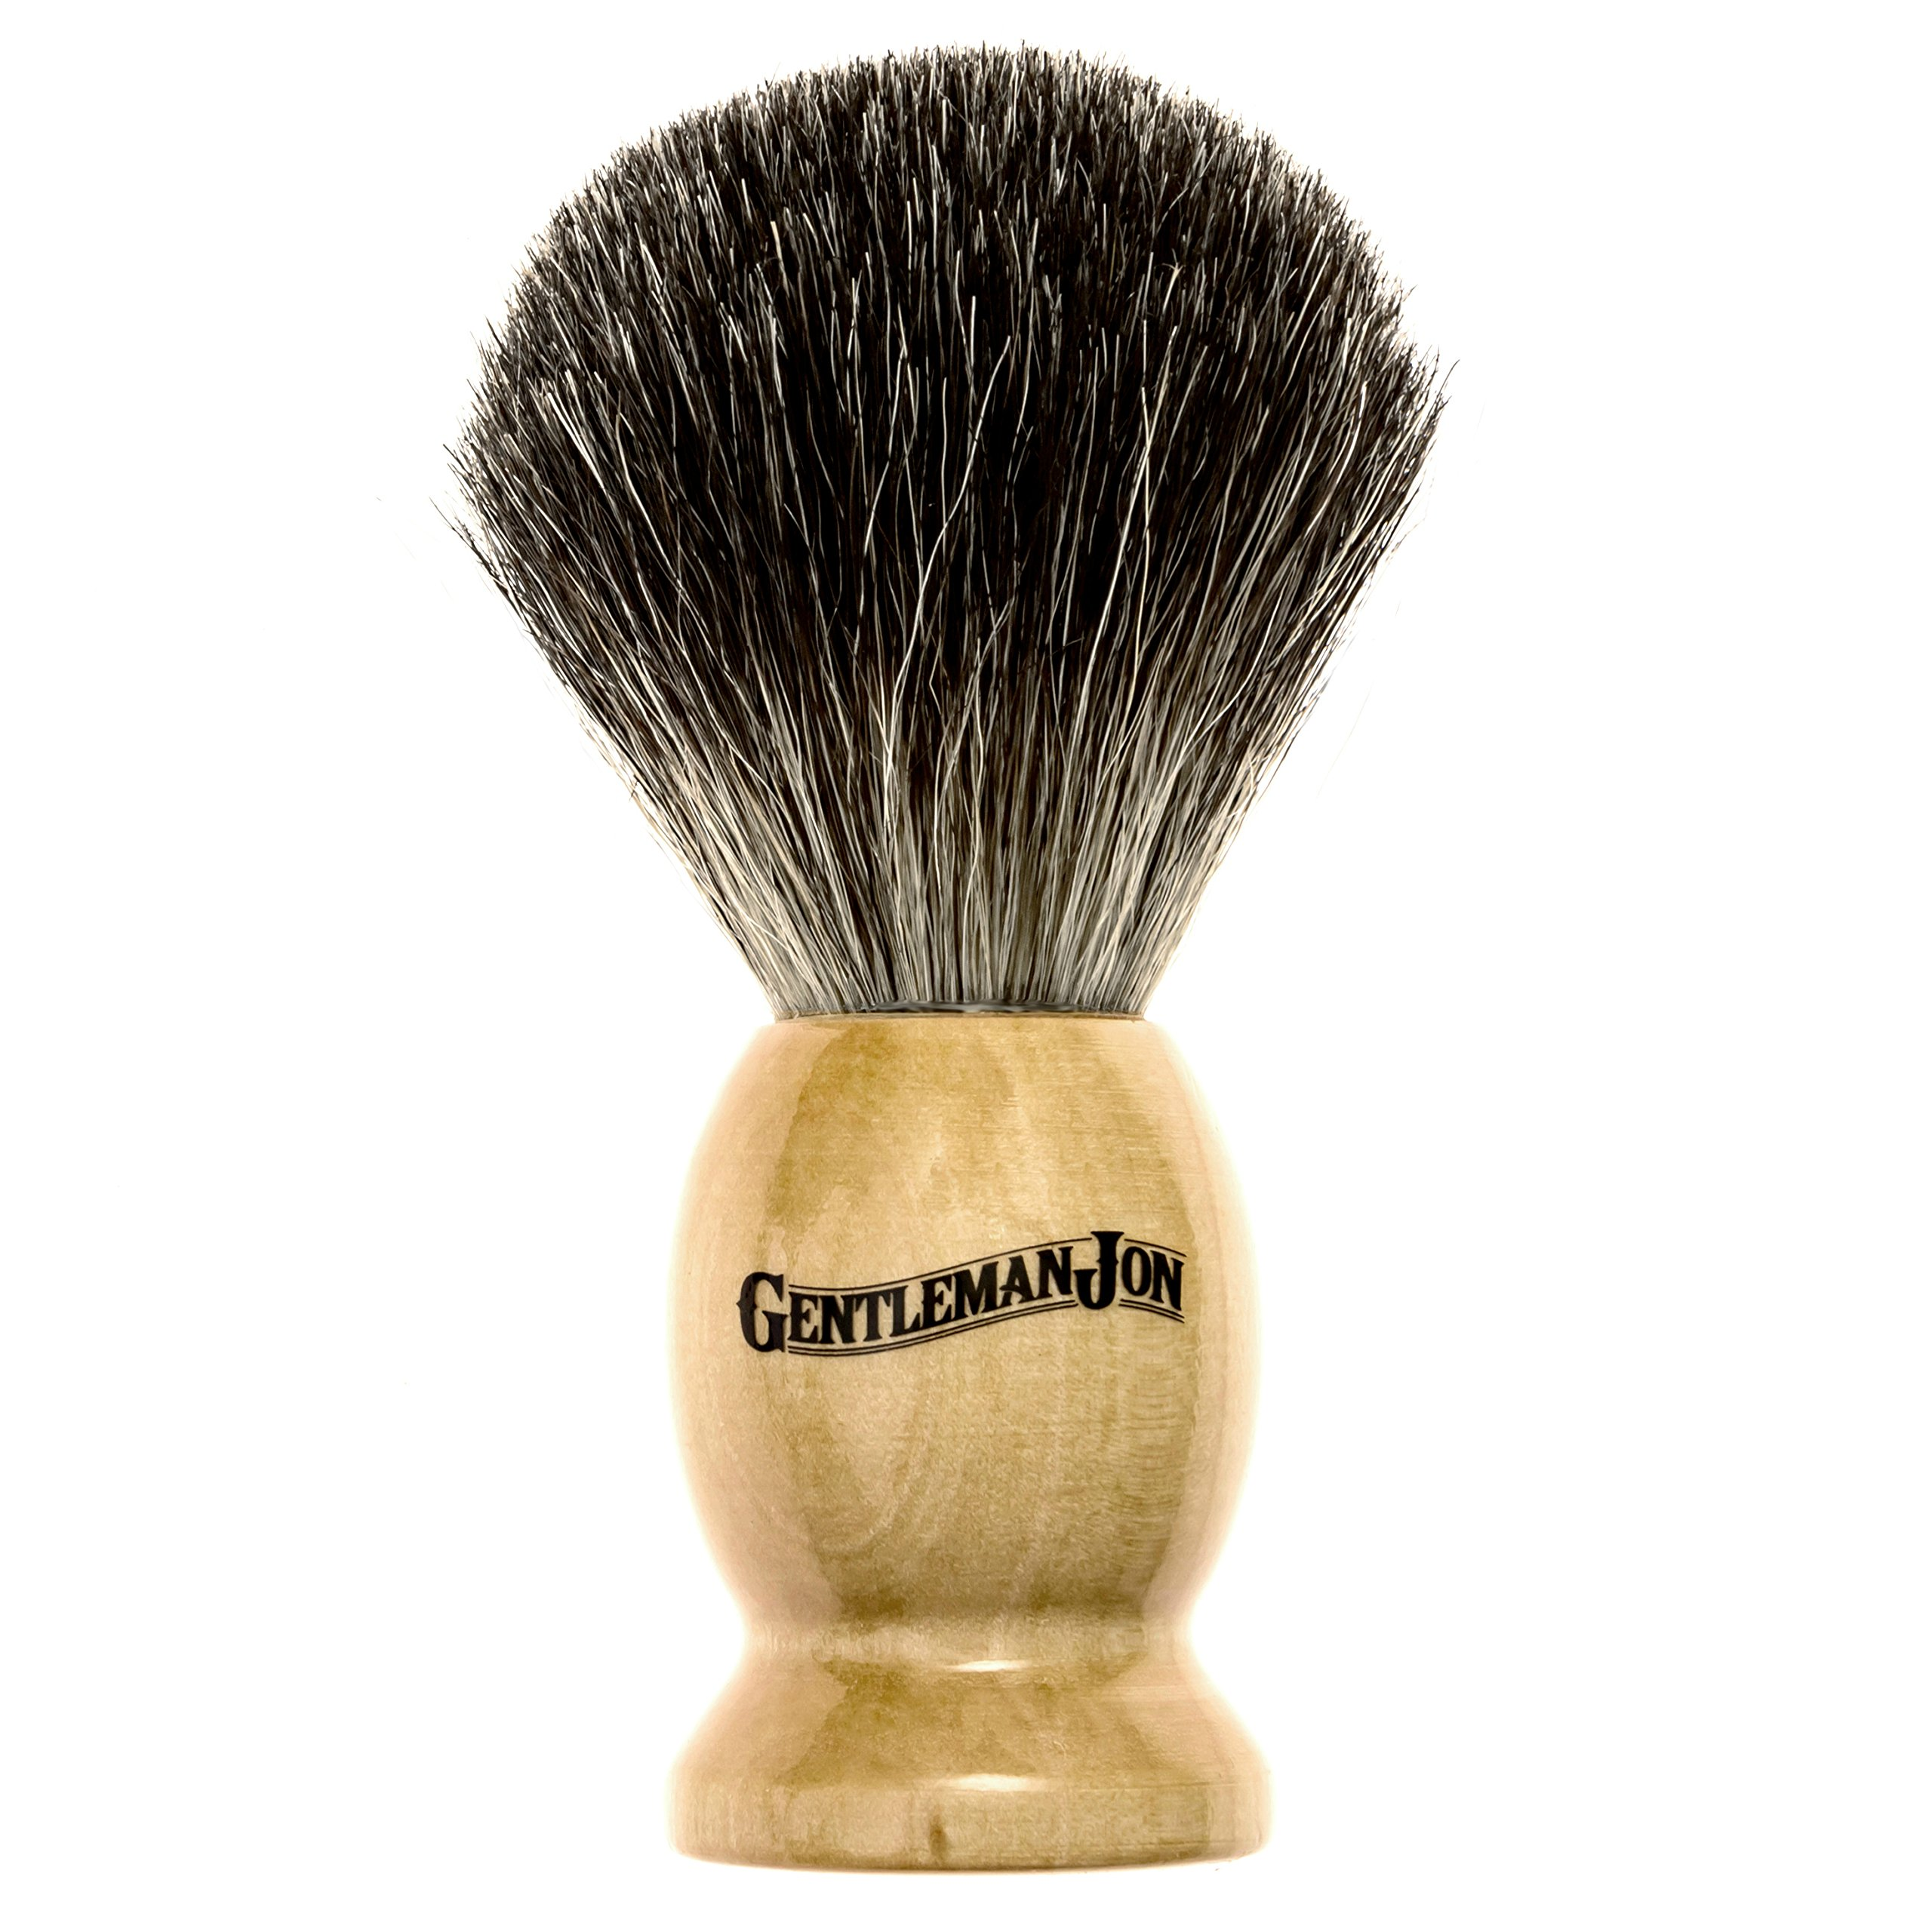 Gentleman Jon Complete Wet Shave Kit | Includes 6 Items: One Safety Razor, One Badger Hair Brush, One Alum Block, One Shave Soap, One Stainless Steel Bowl and Five Razor Blades by Gentleman Jon (Image #4)